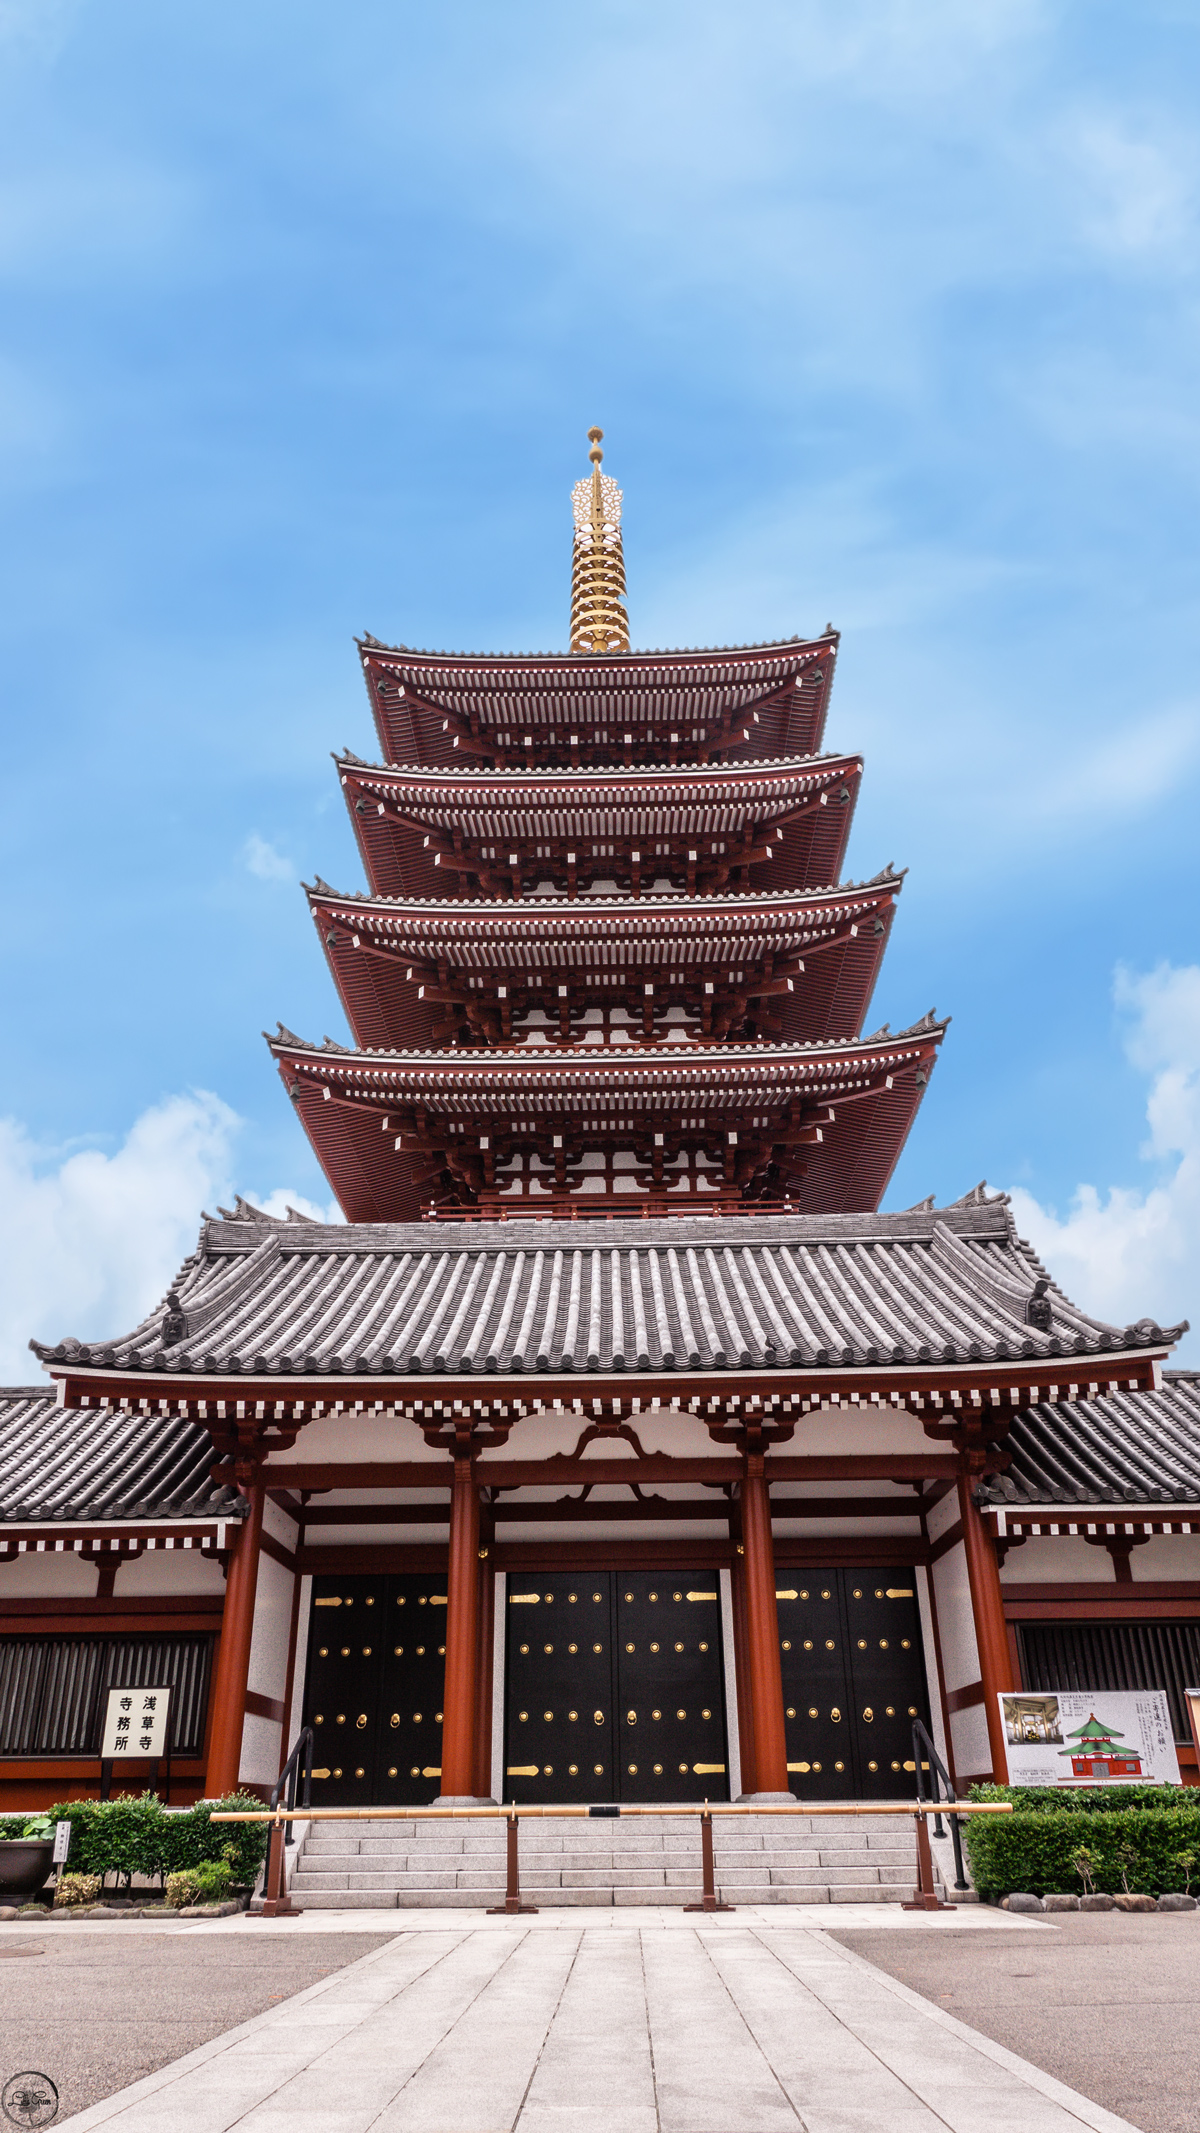 The Five Storied Pagoda of Senso Ji